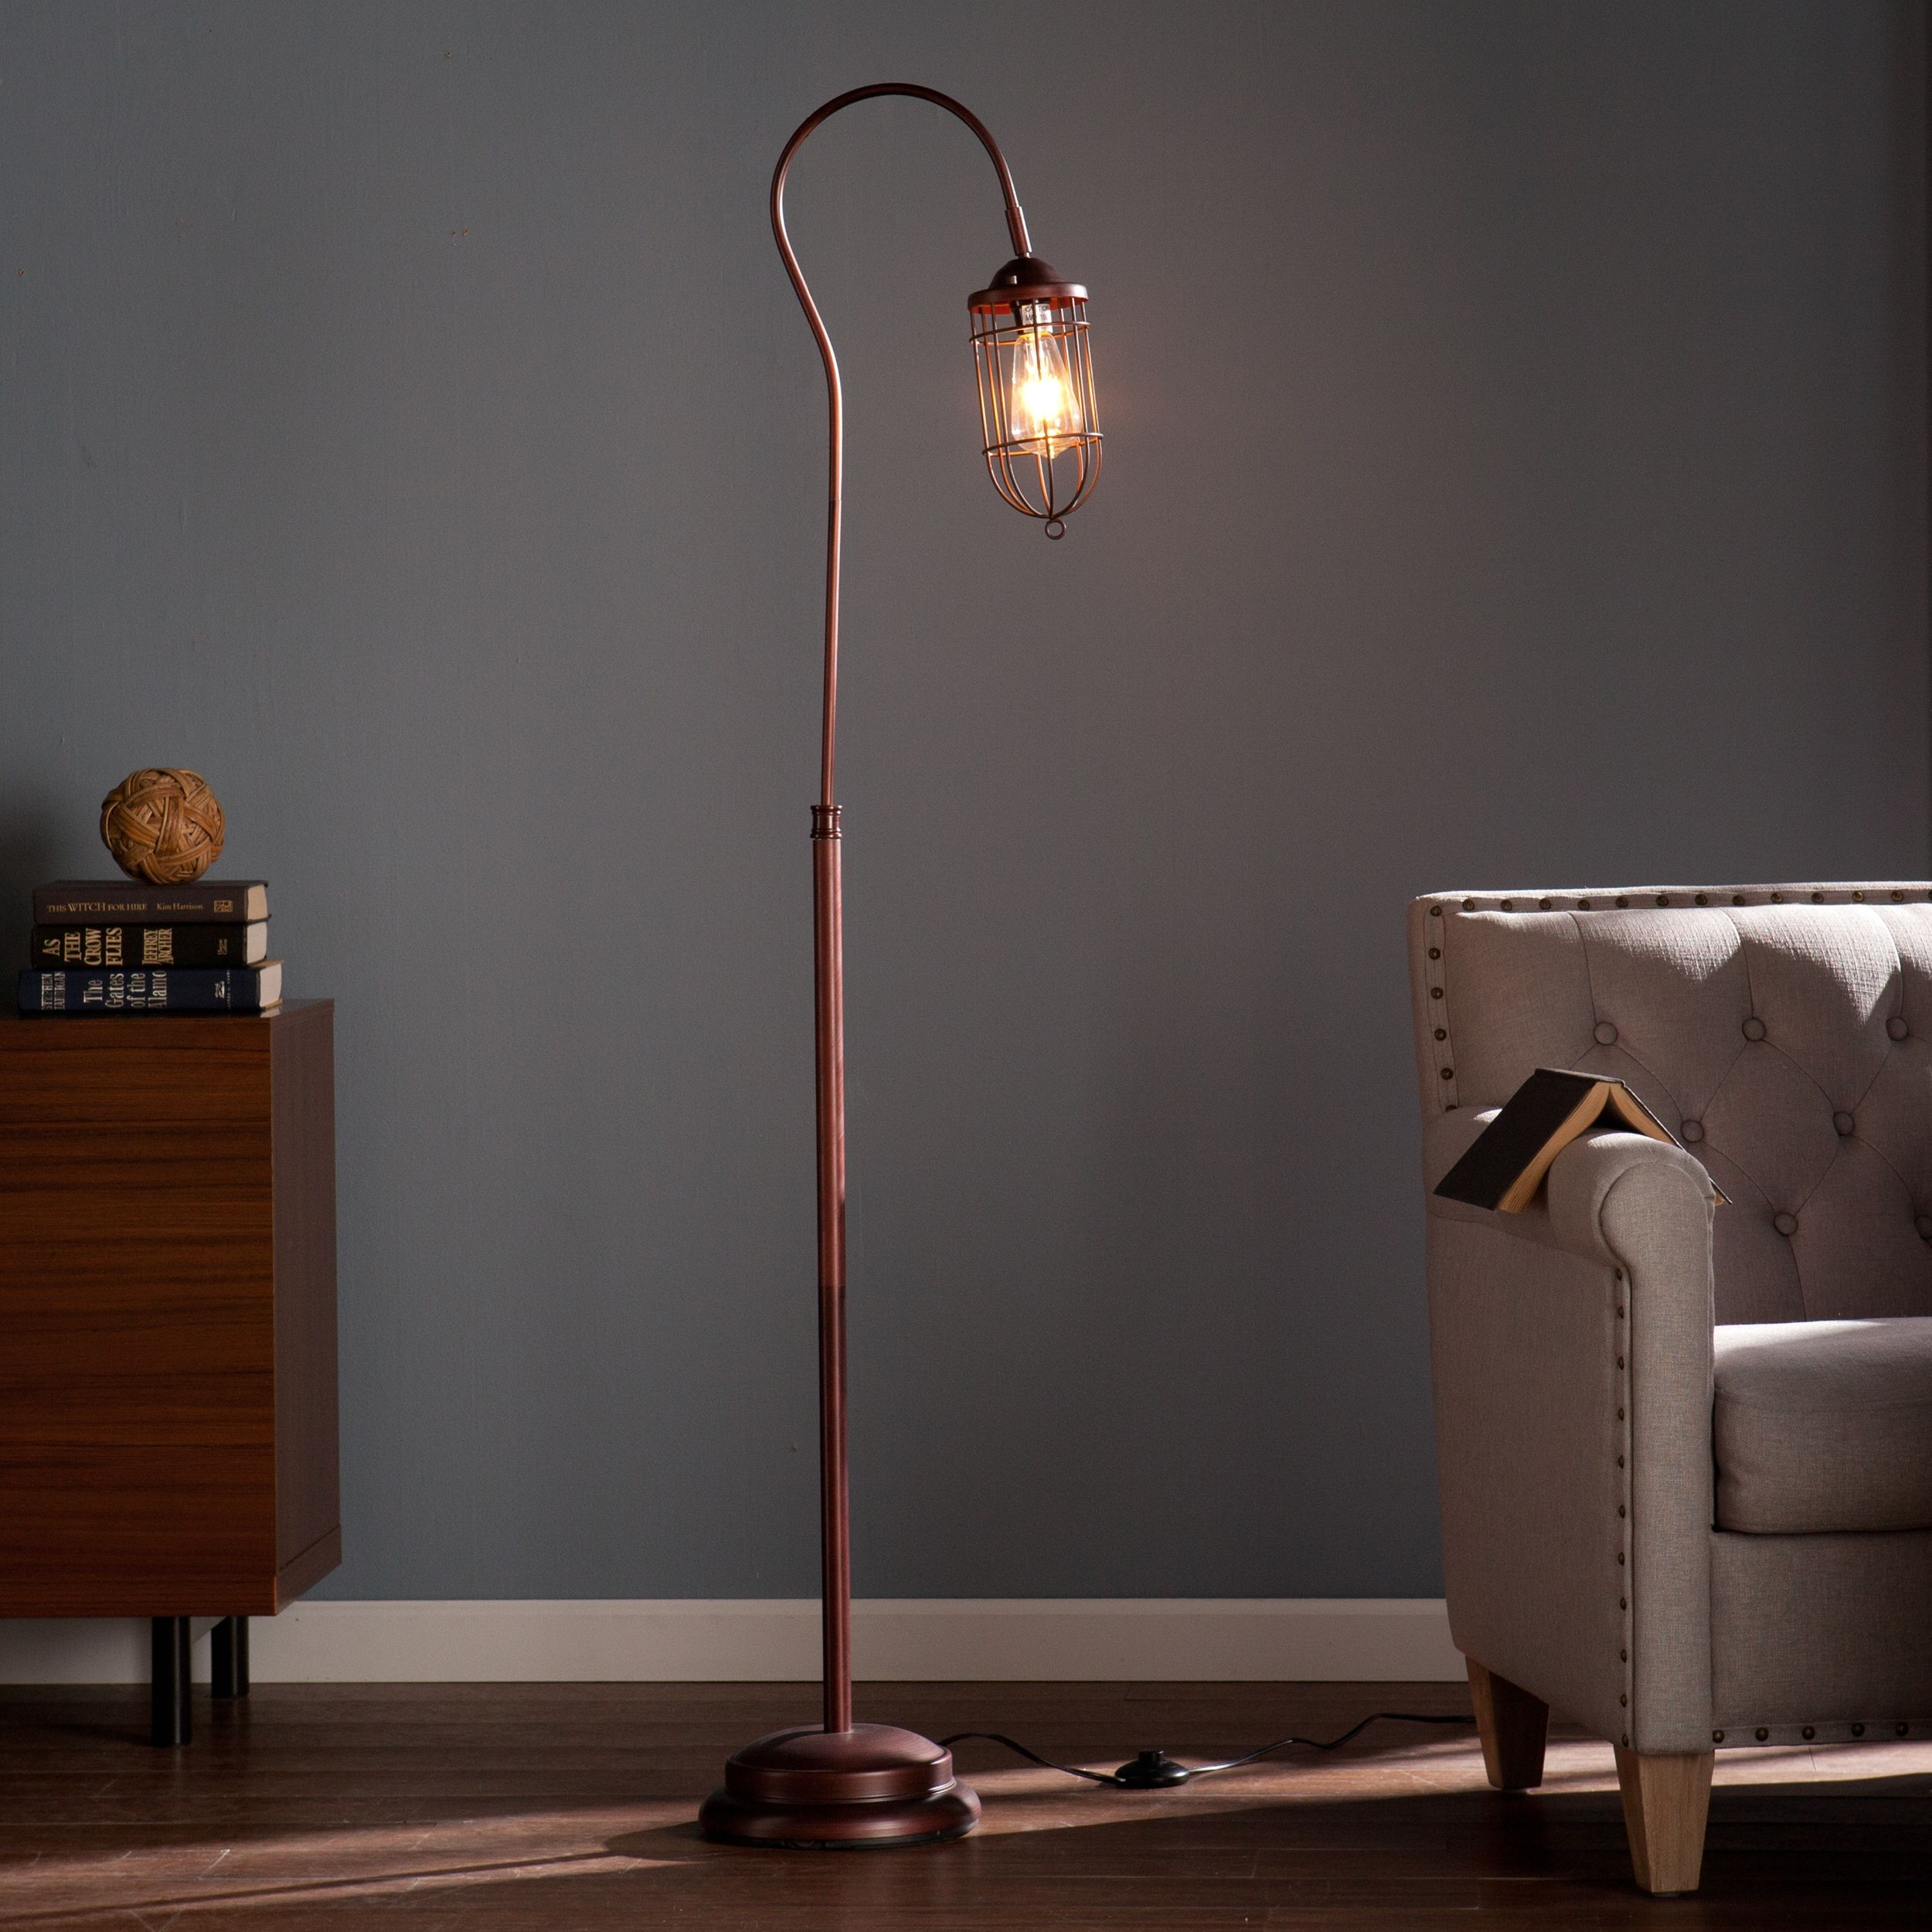 industrial floor lamps Industrial Floor Lamps That Will Light Up Your Home Décor Industrial Floor Lamps That Will Light Up Your Home D  cor 2